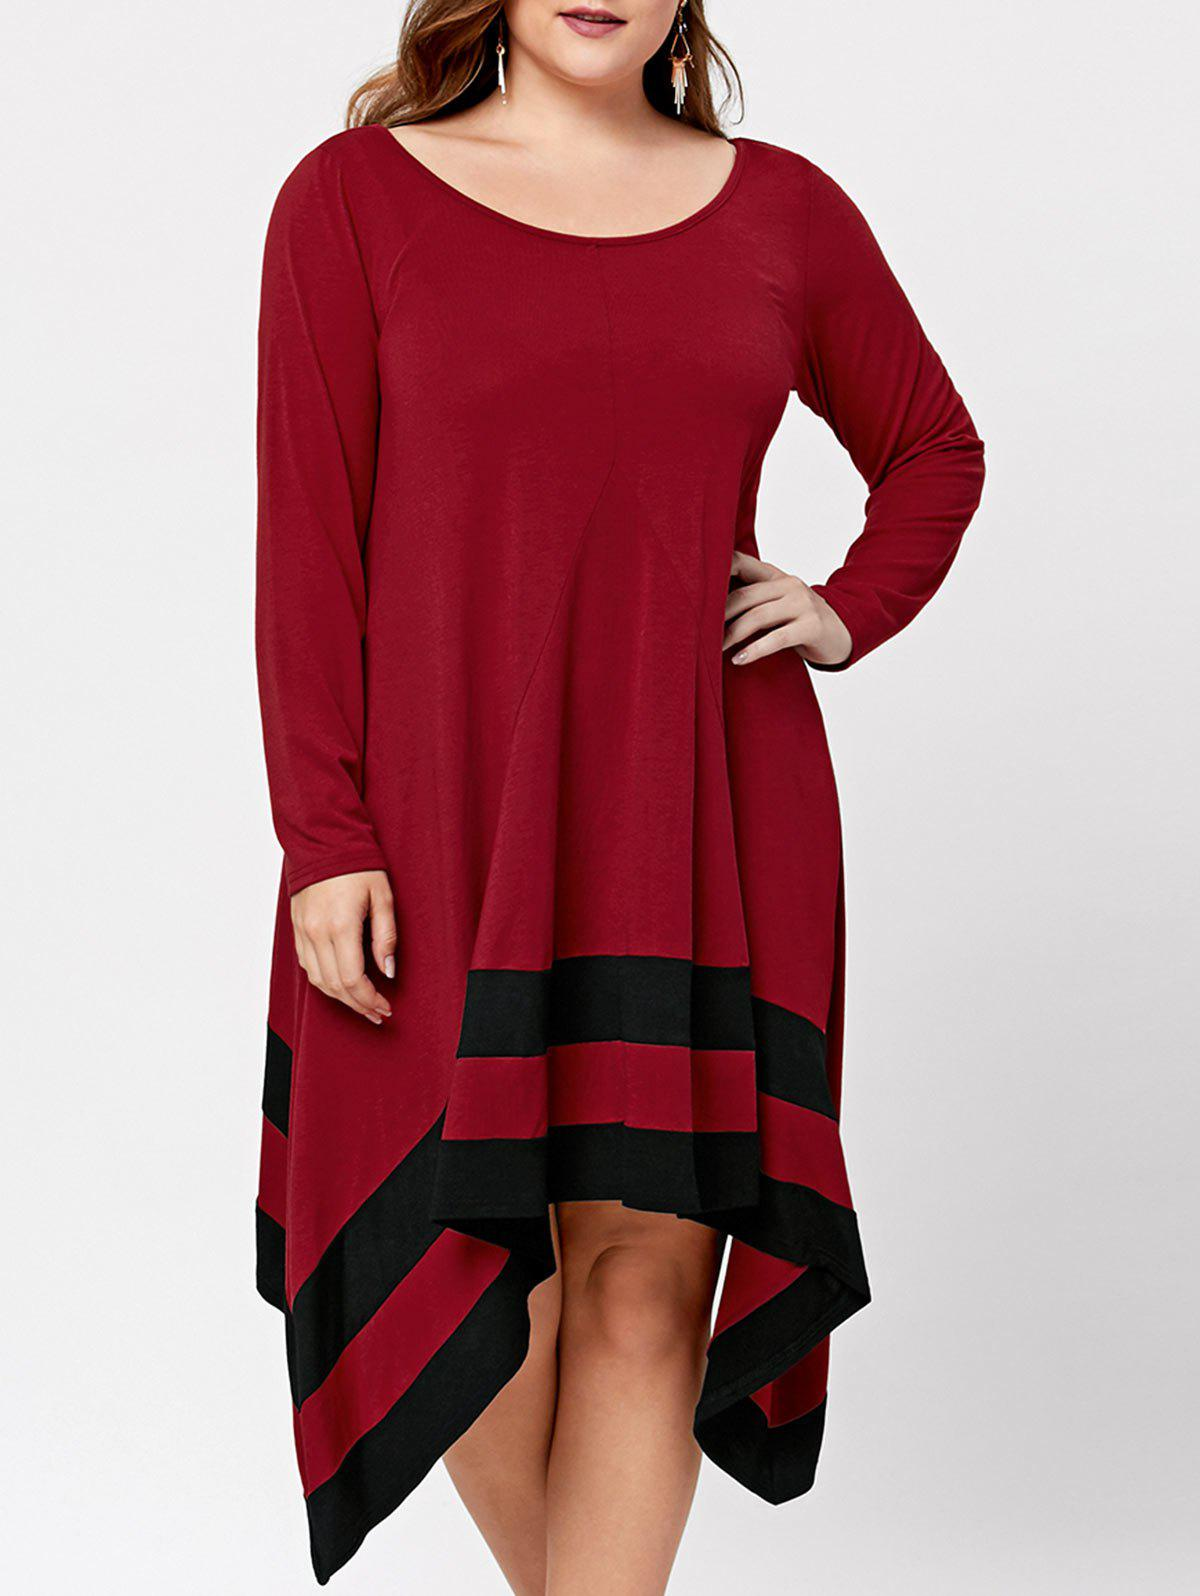 Plus Size Two Tone Asymmetric Long Sleeve DressWOMEN<br><br>Size: 5XL; Color: BLACK&amp;RED; Style: Casual; Material: Cotton,Polyester; Silhouette: Asymmetrical; Dresses Length: Mid-Calf; Neckline: Scoop Neck; Sleeve Length: Long Sleeves; Pattern Type: Others; With Belt: No; Season: Fall,Spring; Weight: 0.4500kg; Package Contents: 1 x Dress;